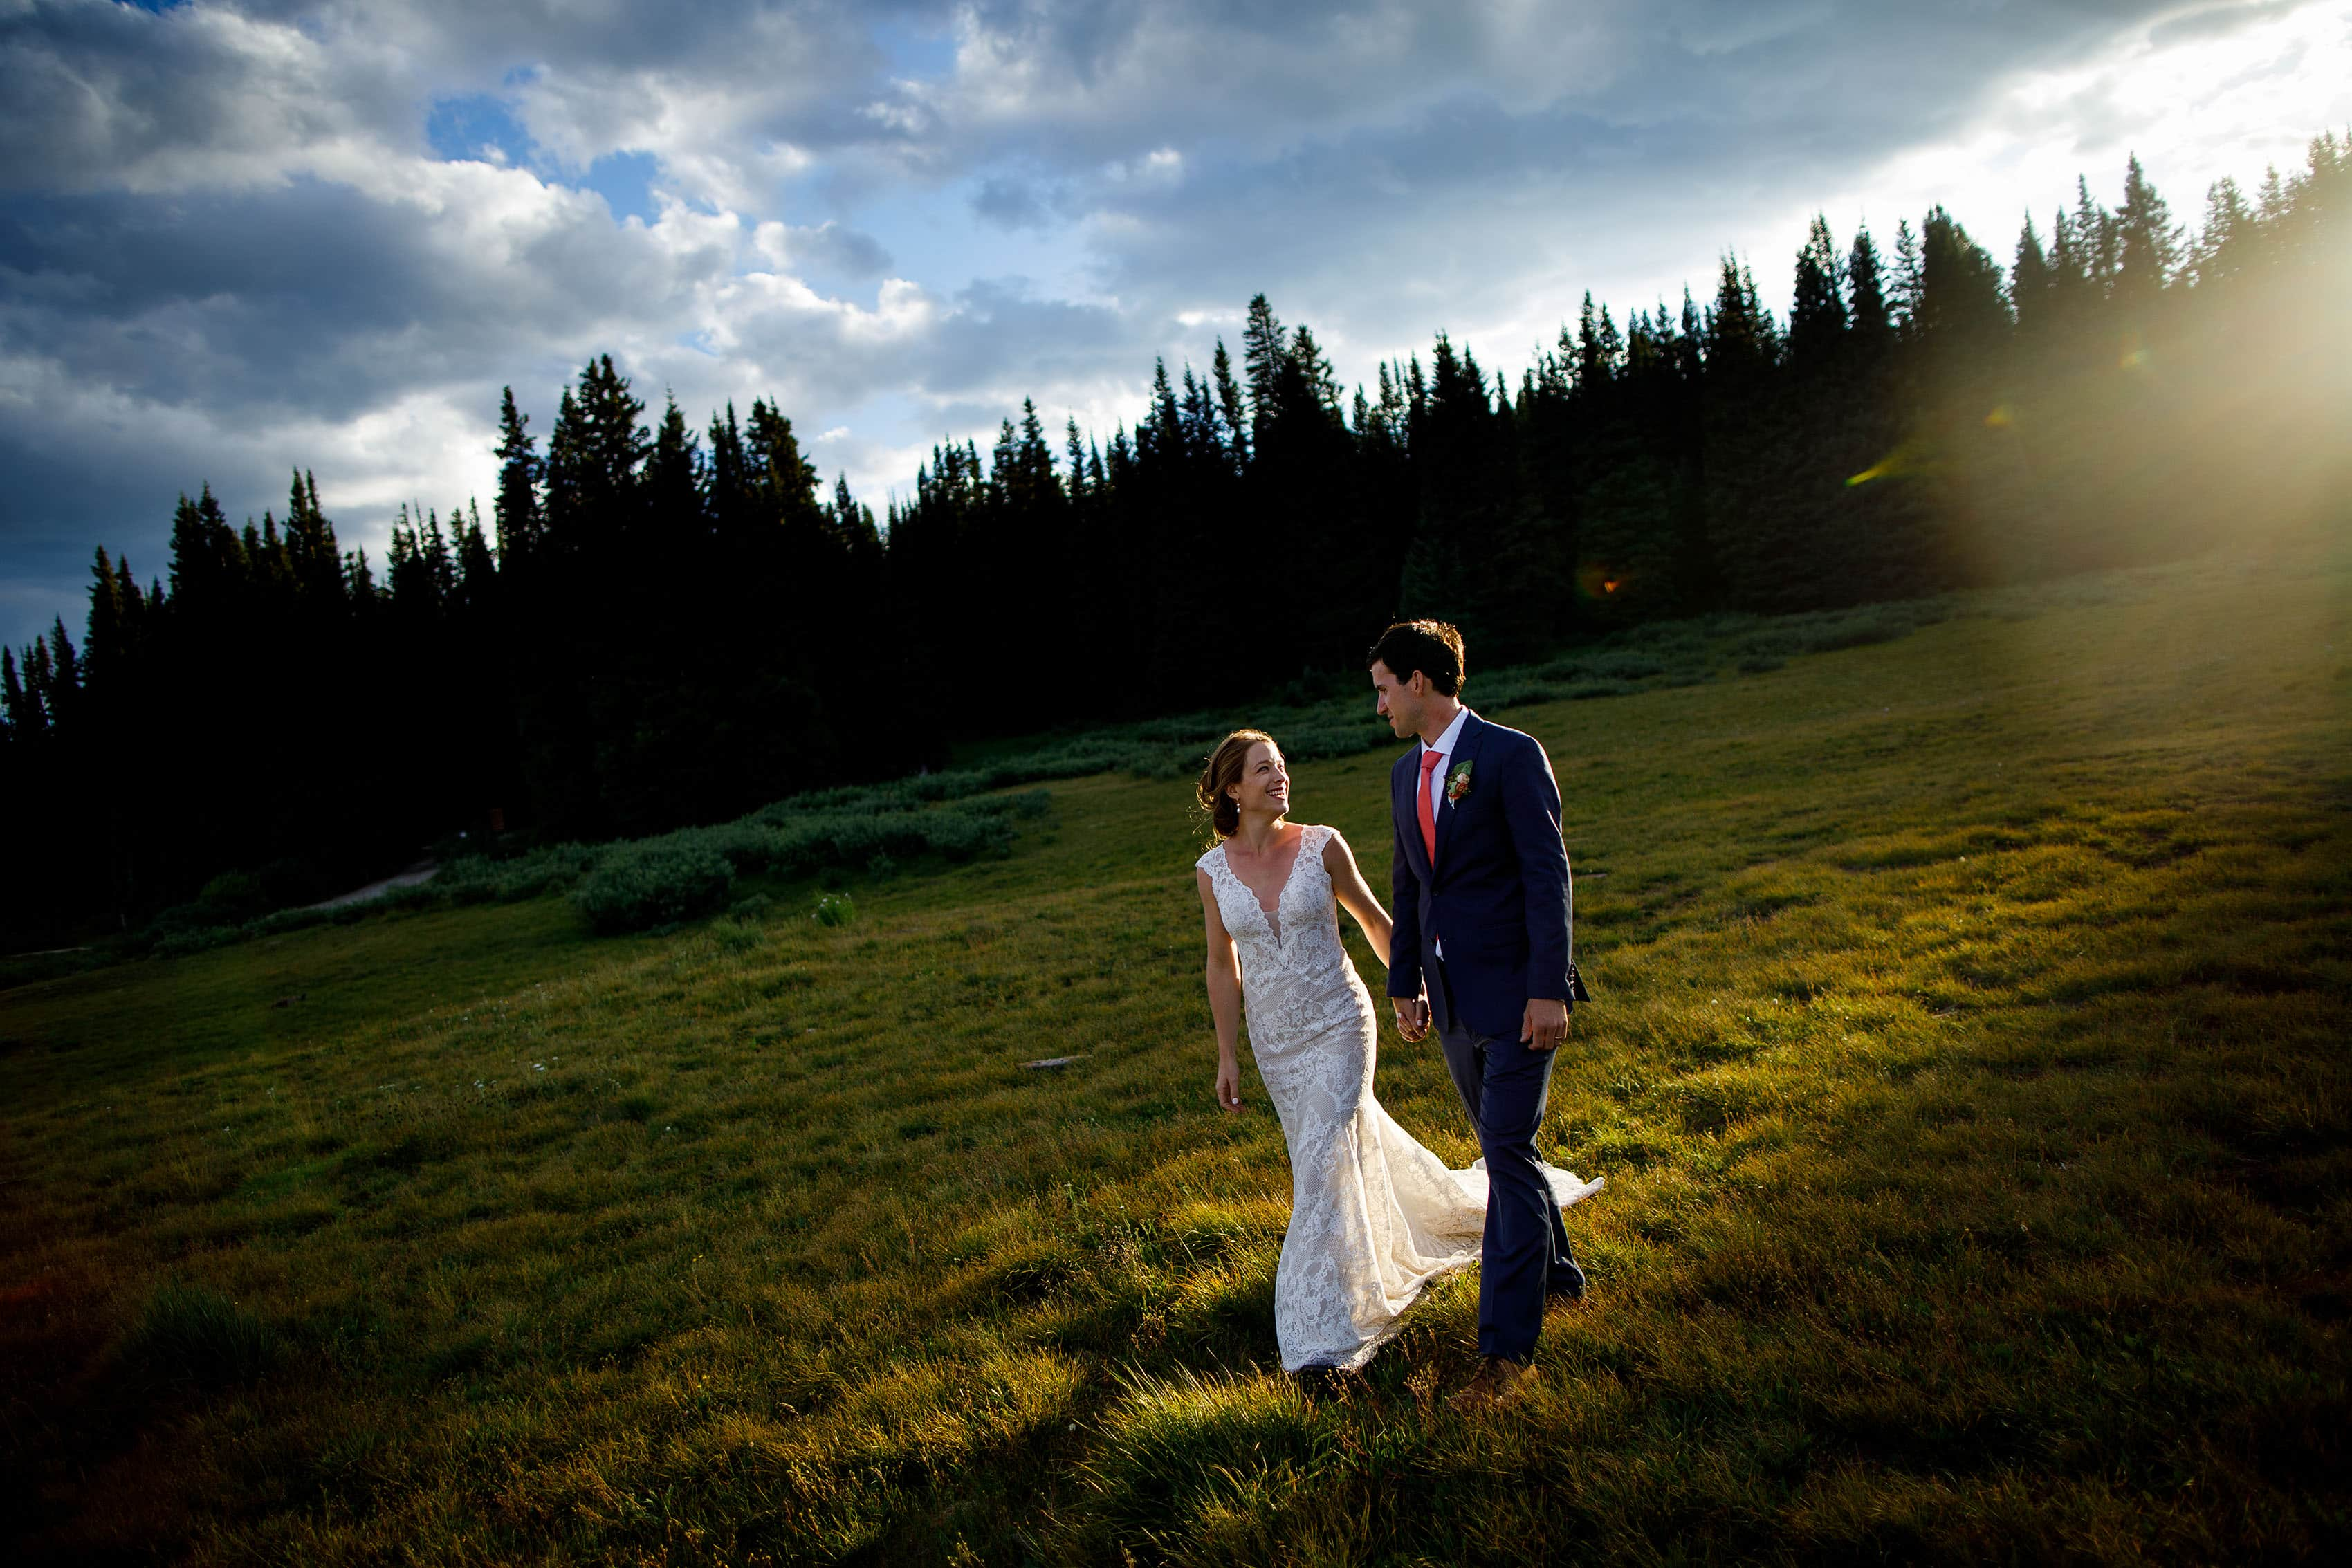 The sun flares over the ridge as Carissa and Kyle walk together at Shrine Pass